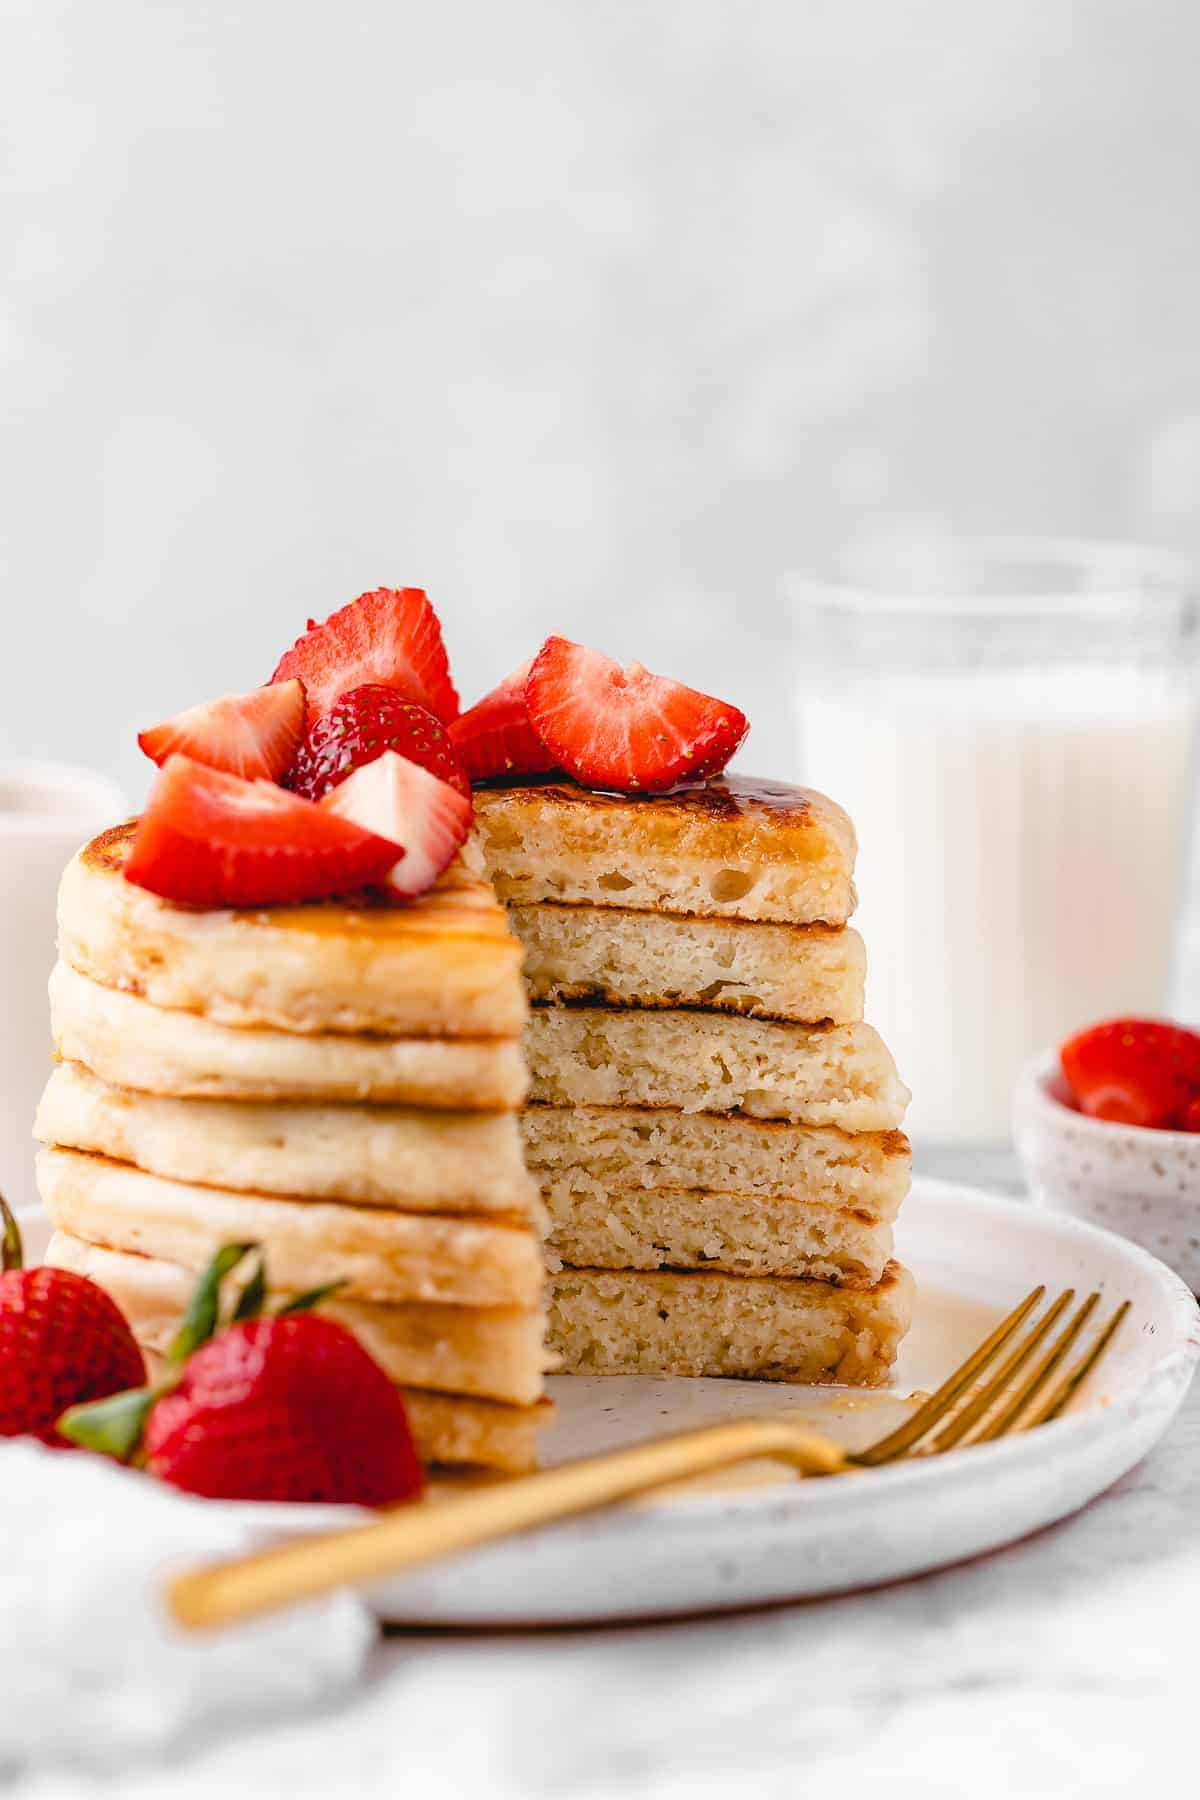 Fluffy vegan pancakes with chopped strawberries.